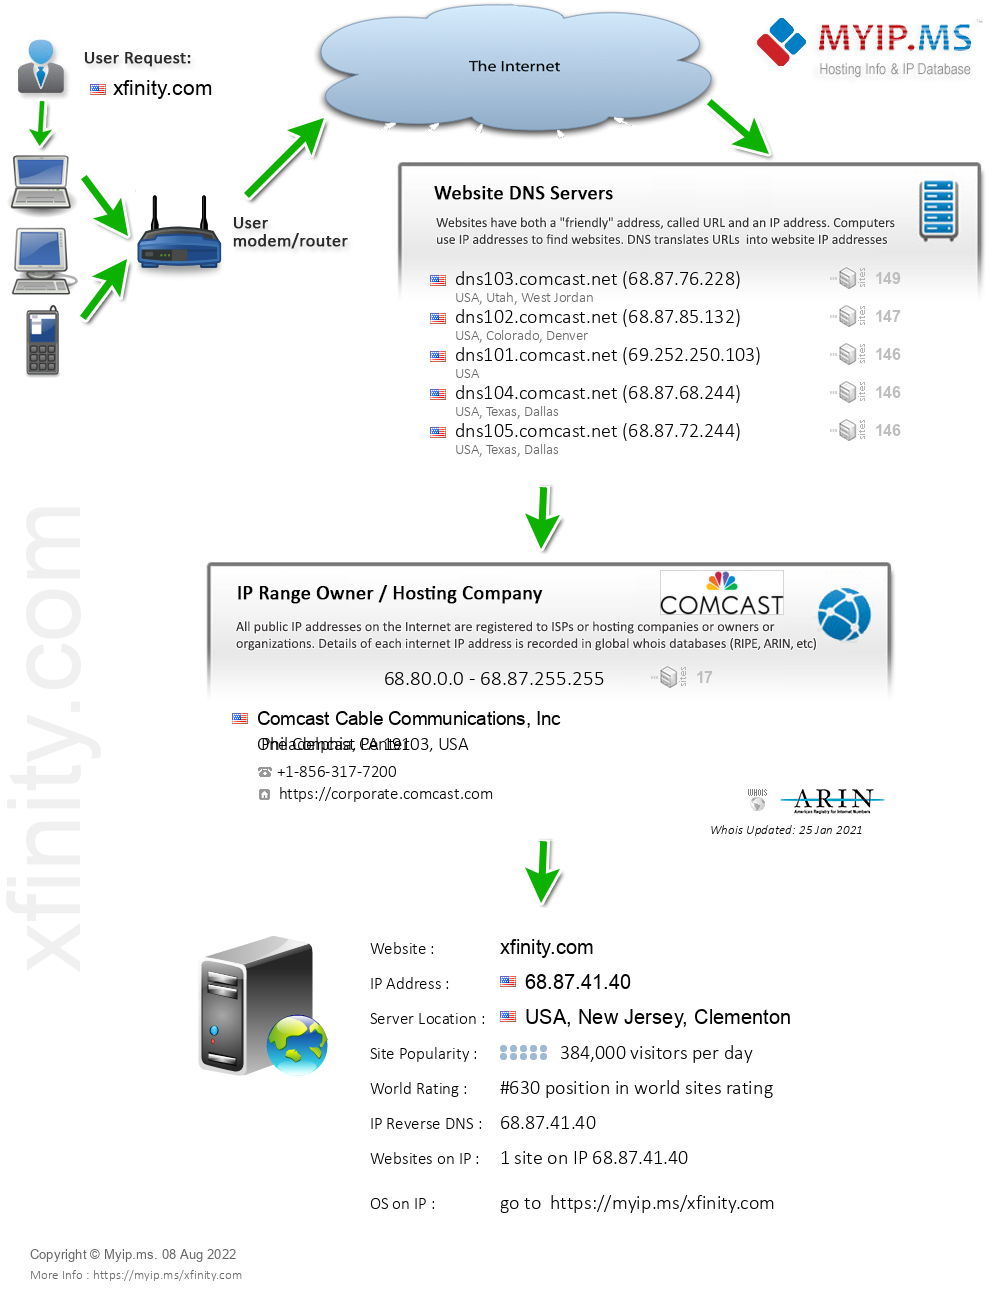 Xfinity.com - Website Hosting Visual IP Diagram